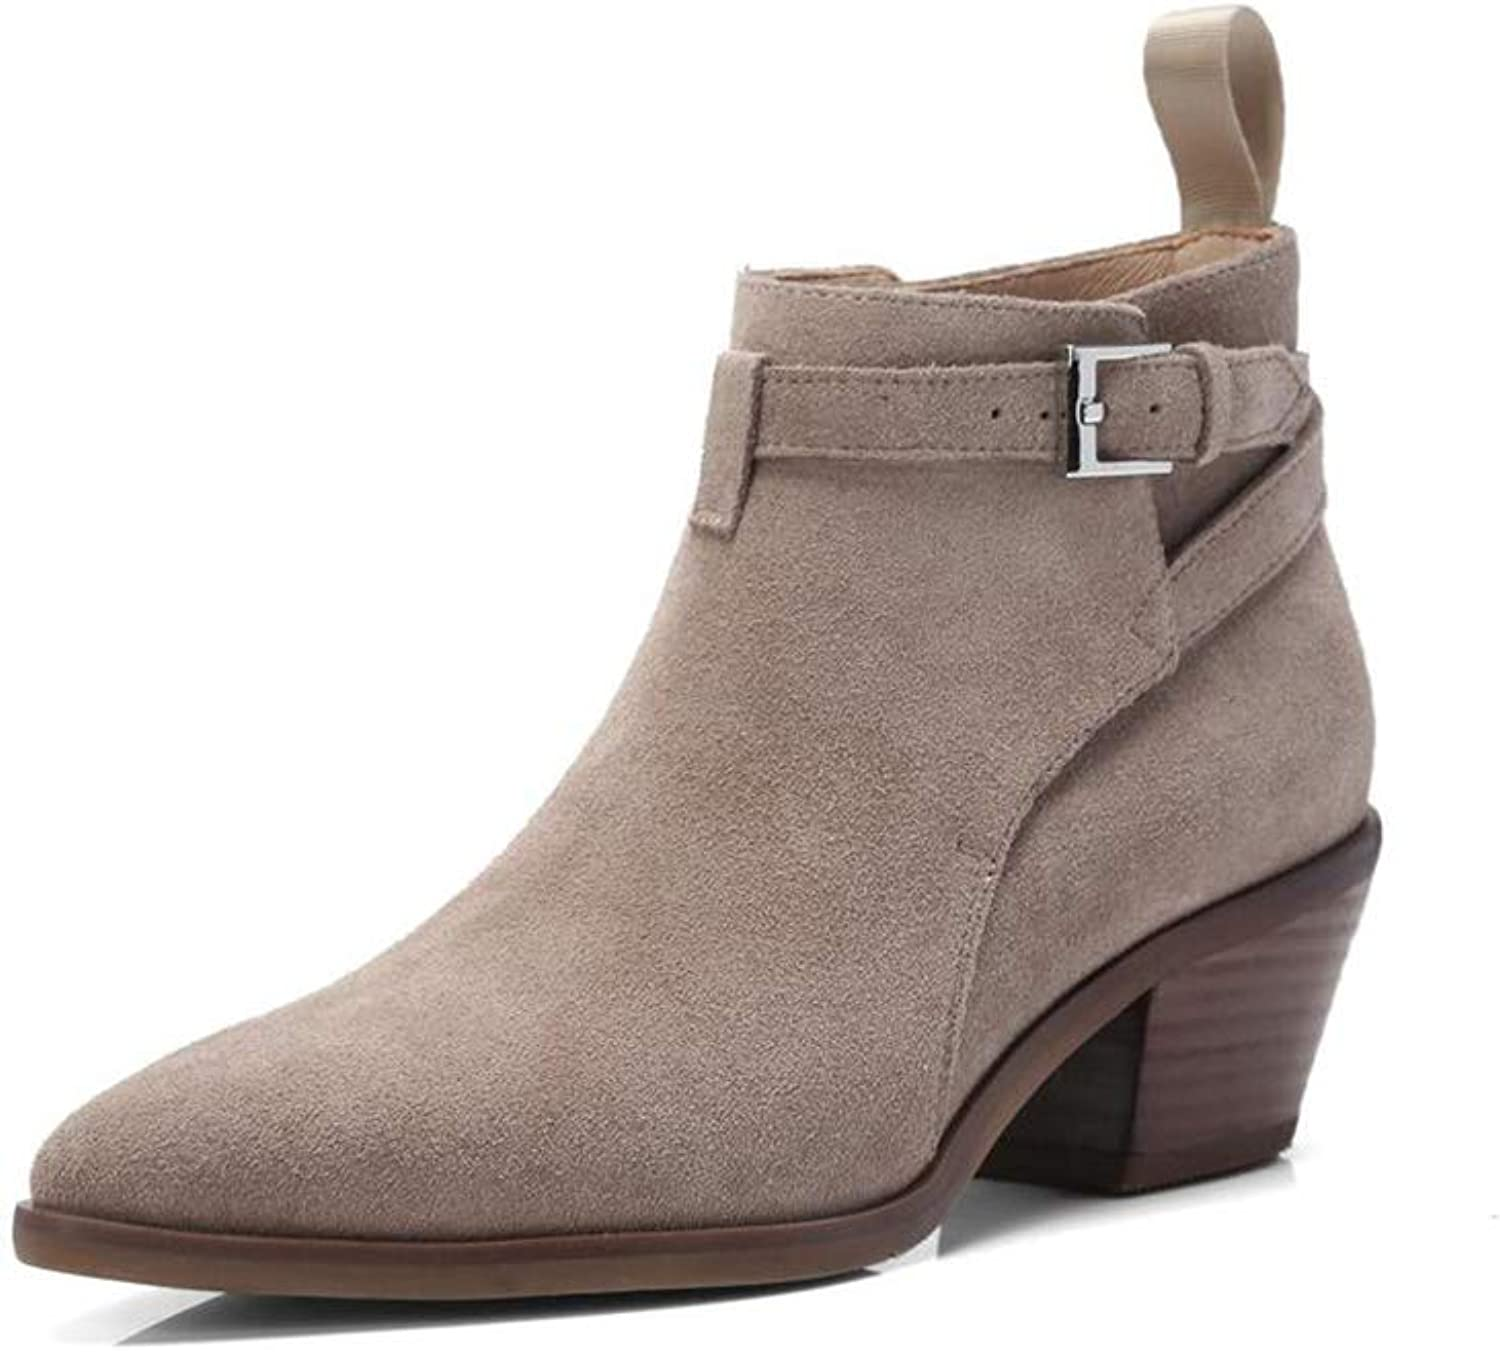 Xiaolin Women's Round Head Suede Stack Heel Western and Ankle Boots Martin Heots Belt Buckle Booties (color   A, Size   US5 EU35 UK3 CN34)